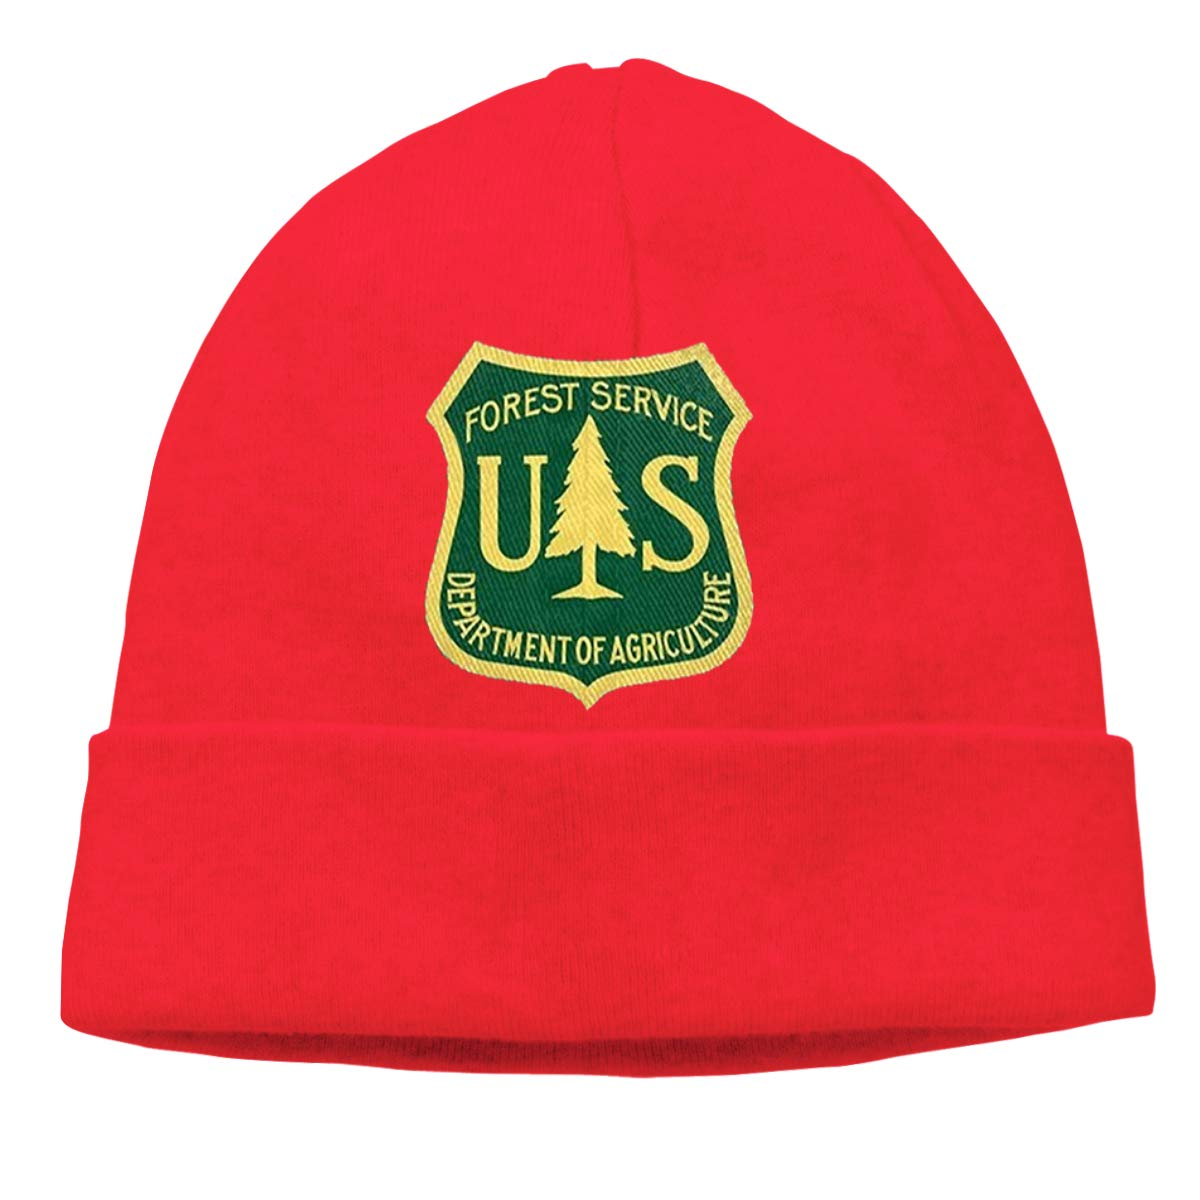 United States Forest Service Unisex Cuffed Plain Skull Knitted Hat Beanie Cap Men Women Black